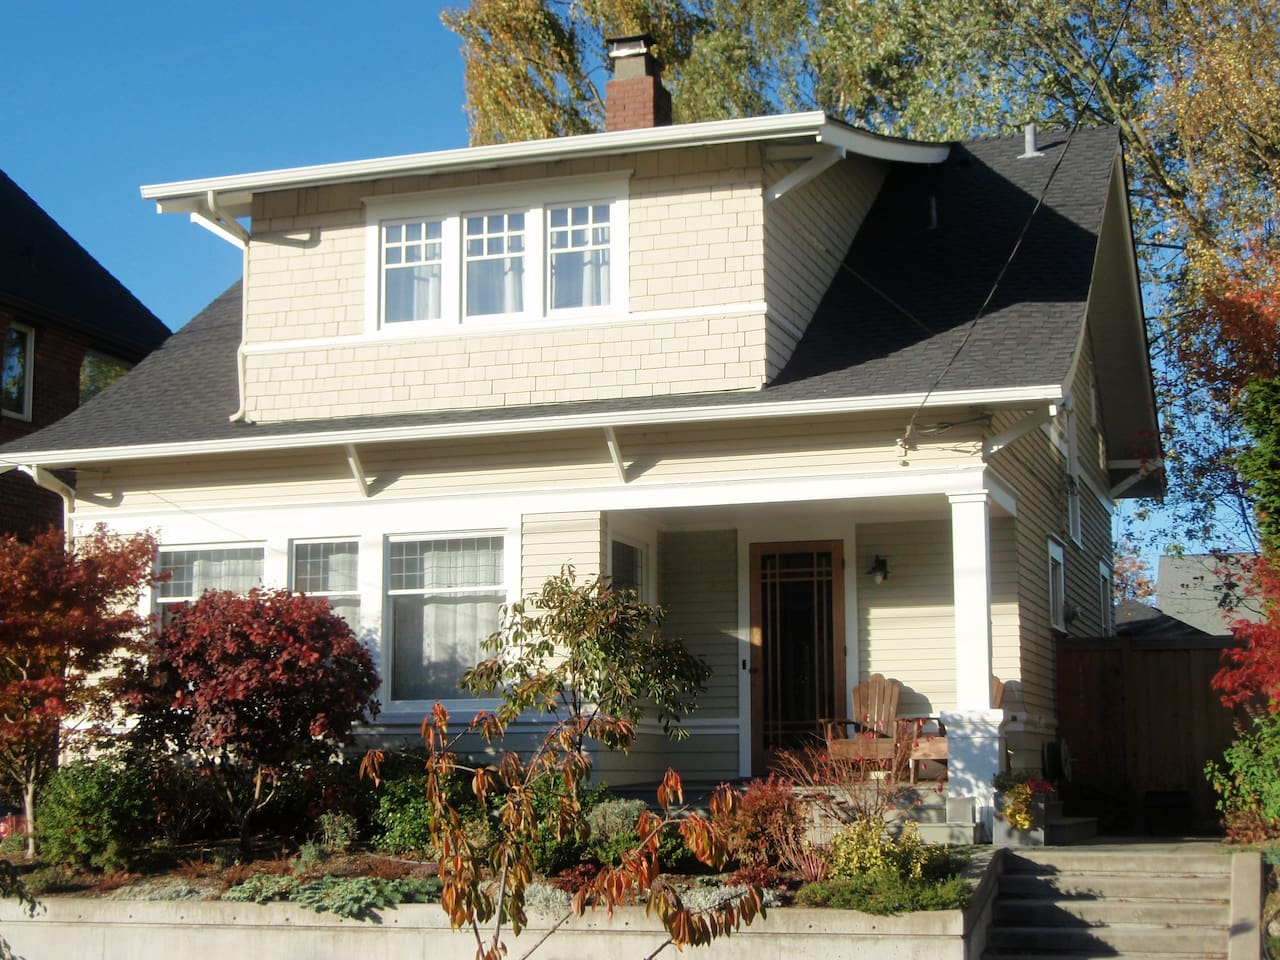 Nice home on a quiet street, steps away from the shops and restaurants on Queen Anne Avenue.